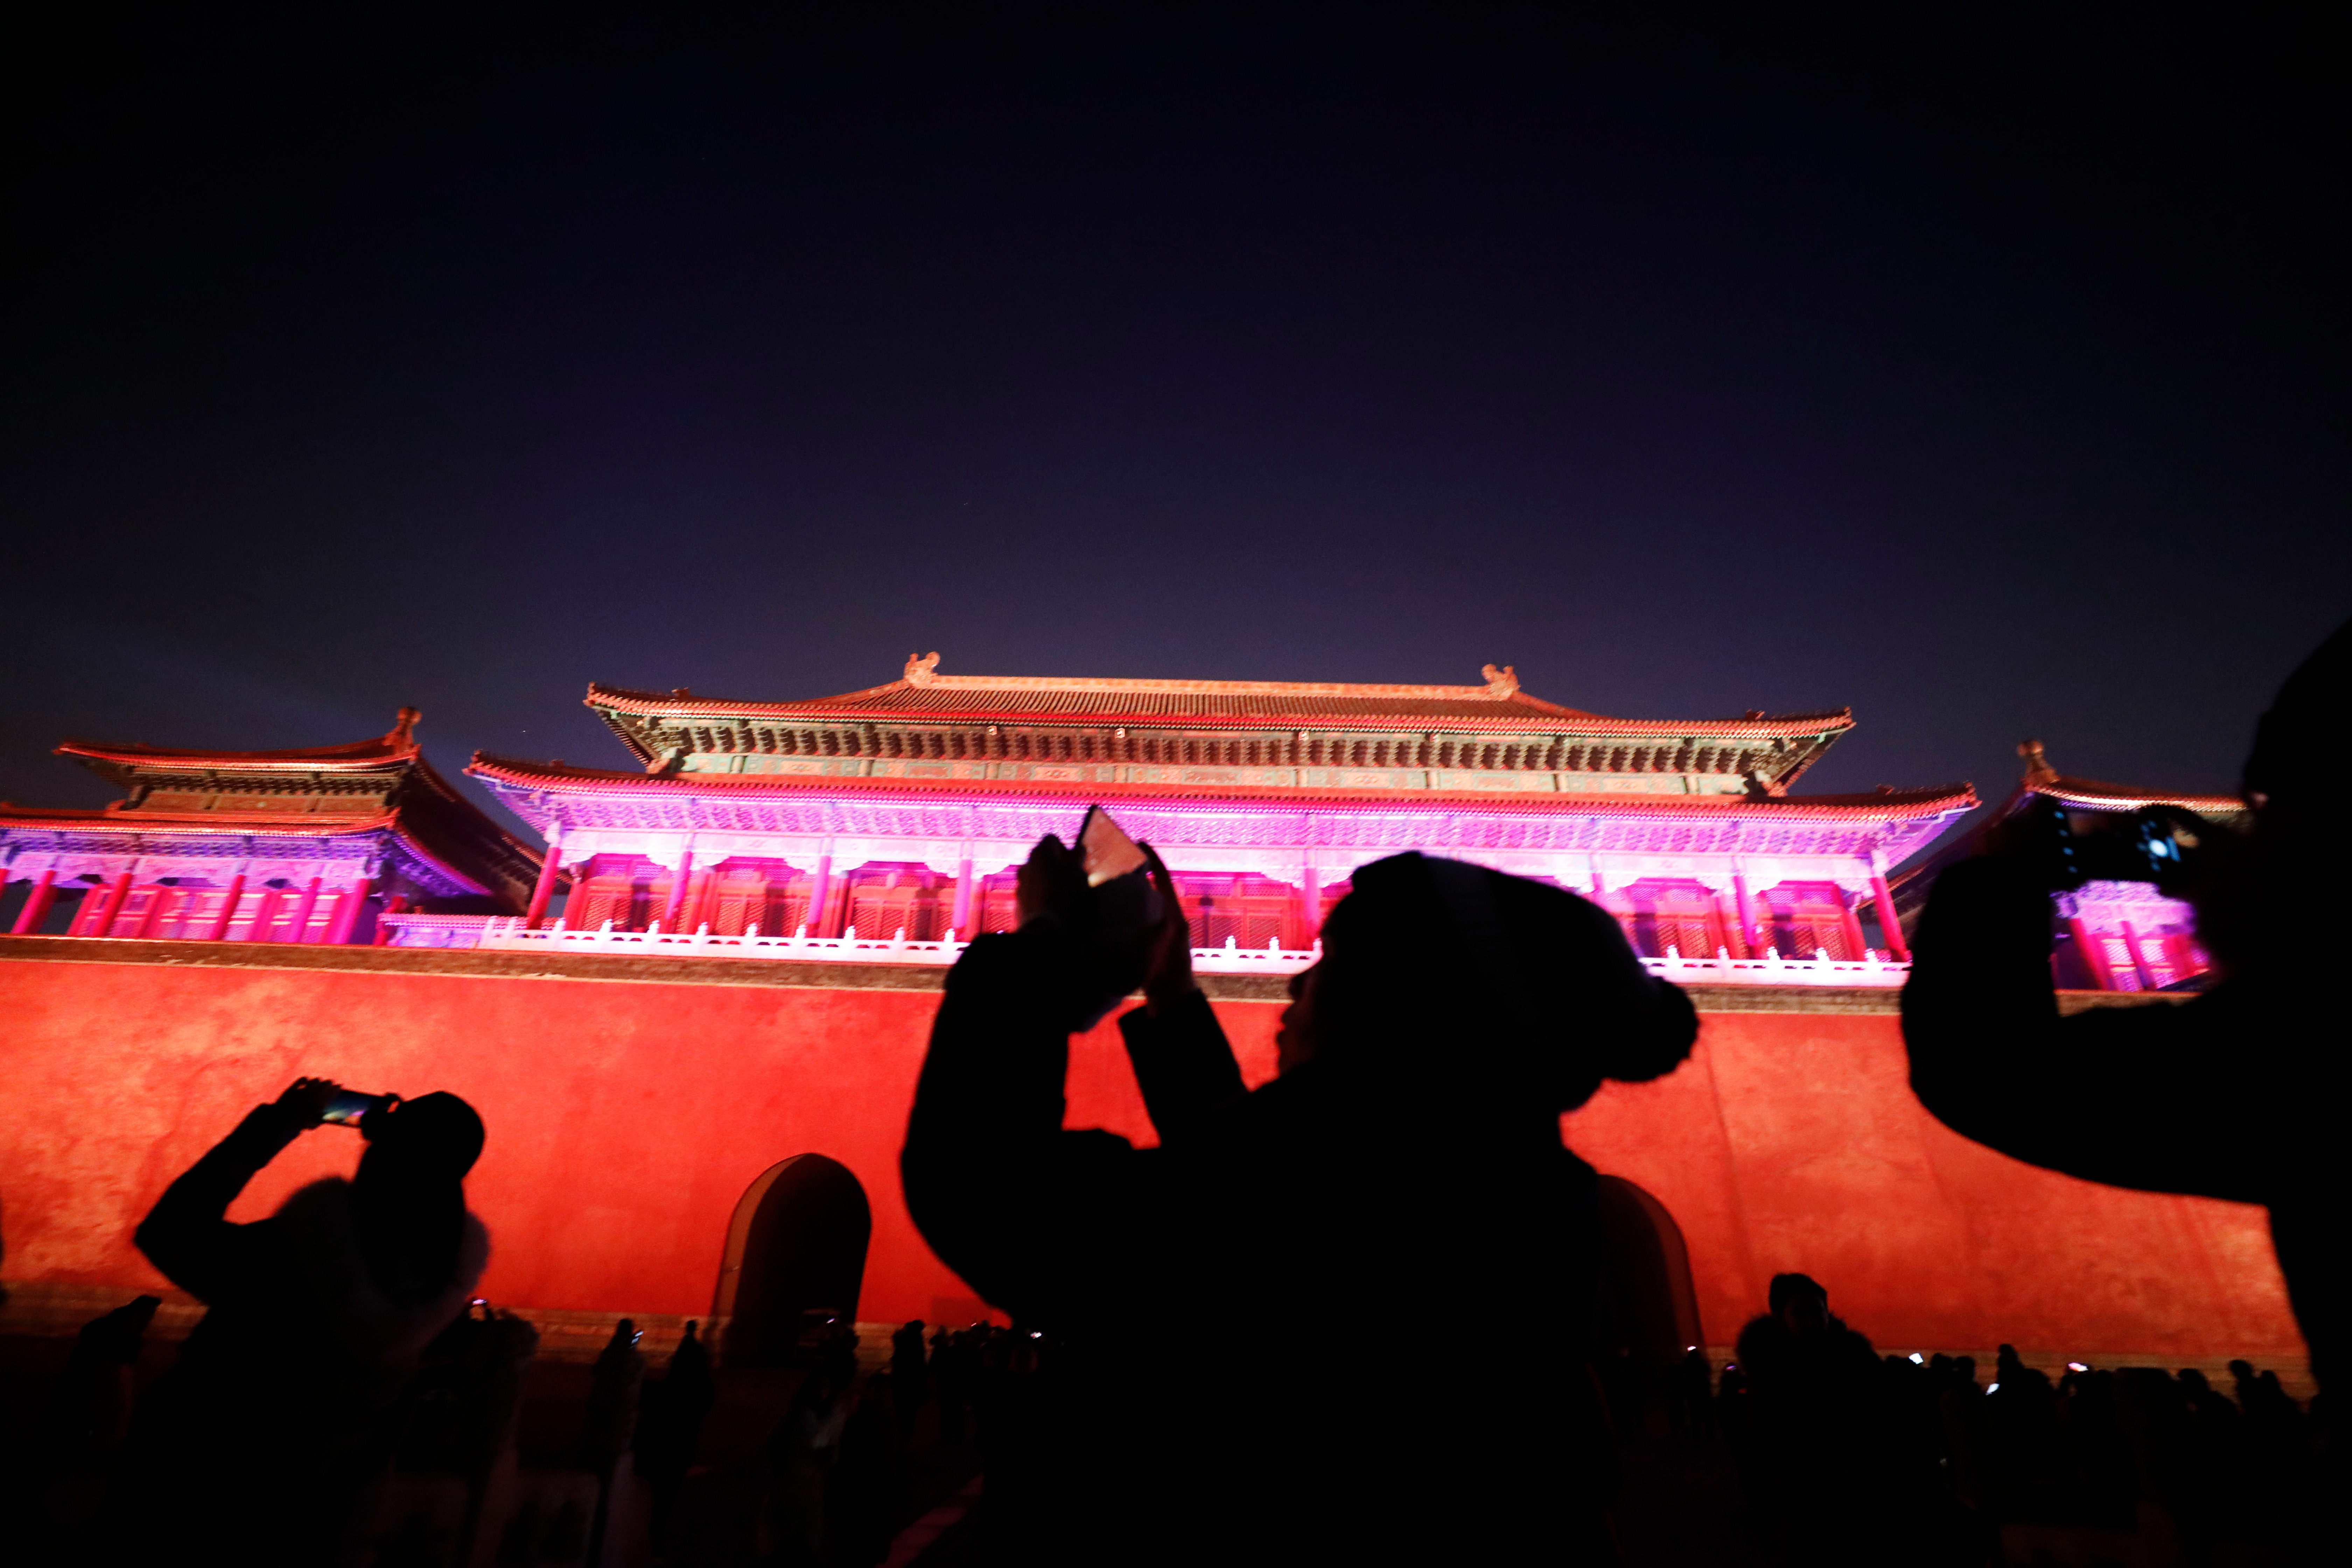 Visitors take pictures of the Forbidden City or Palace Museum lit up as part of celebrations for the Lantern Festival, marking the last day of the Chinese Lunar New Year in Beijing, China, 19 February 2019. For the first time in 94 years, Beijing's Forbidden City is lit up at night and opened to the public to celebrate the Lantern Festival as part of the lunar new year celebrations. Forbidden City or Palace Museum lights up for Lantern Festival, Beijing, China - 19 Feb 2019